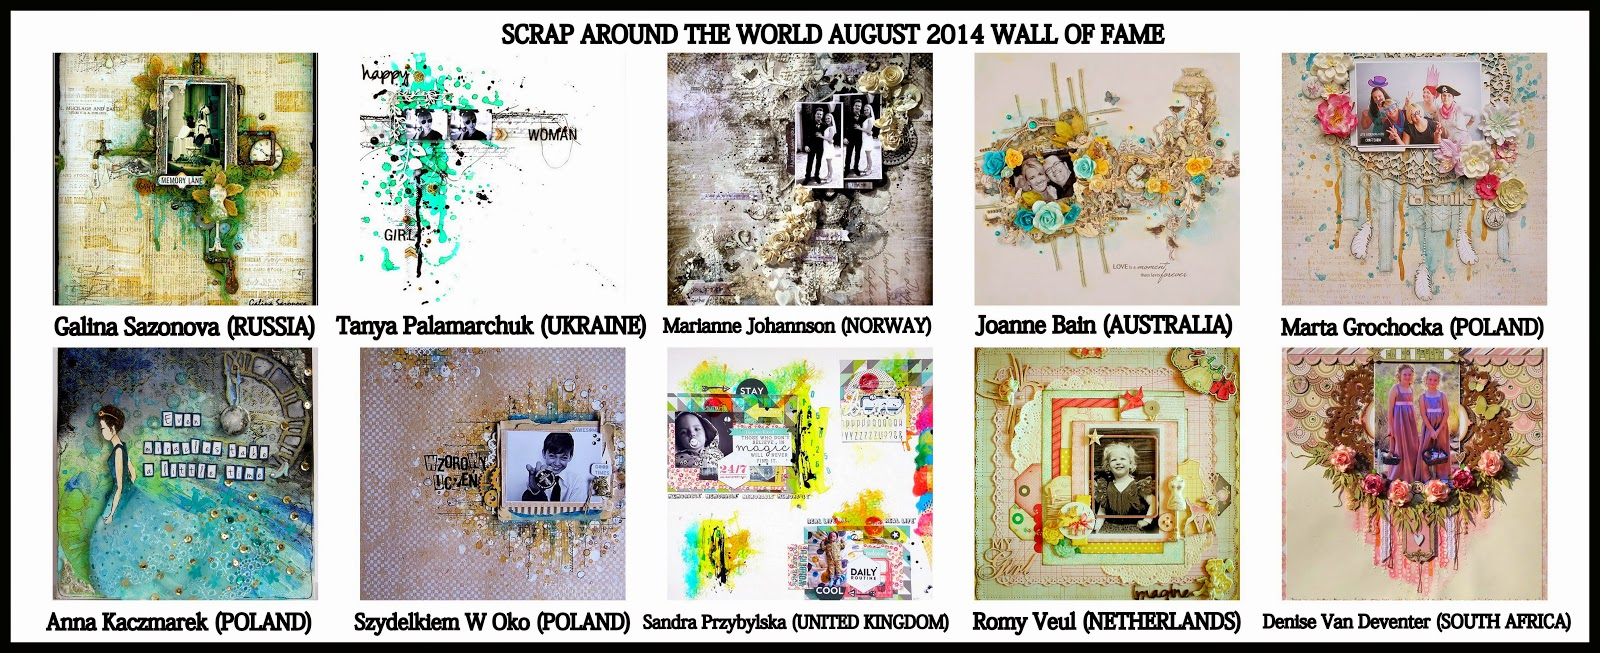 http://scraparoundtheworld.blogspot.gr/2014/09/august-2014-winners-features-finalists.html